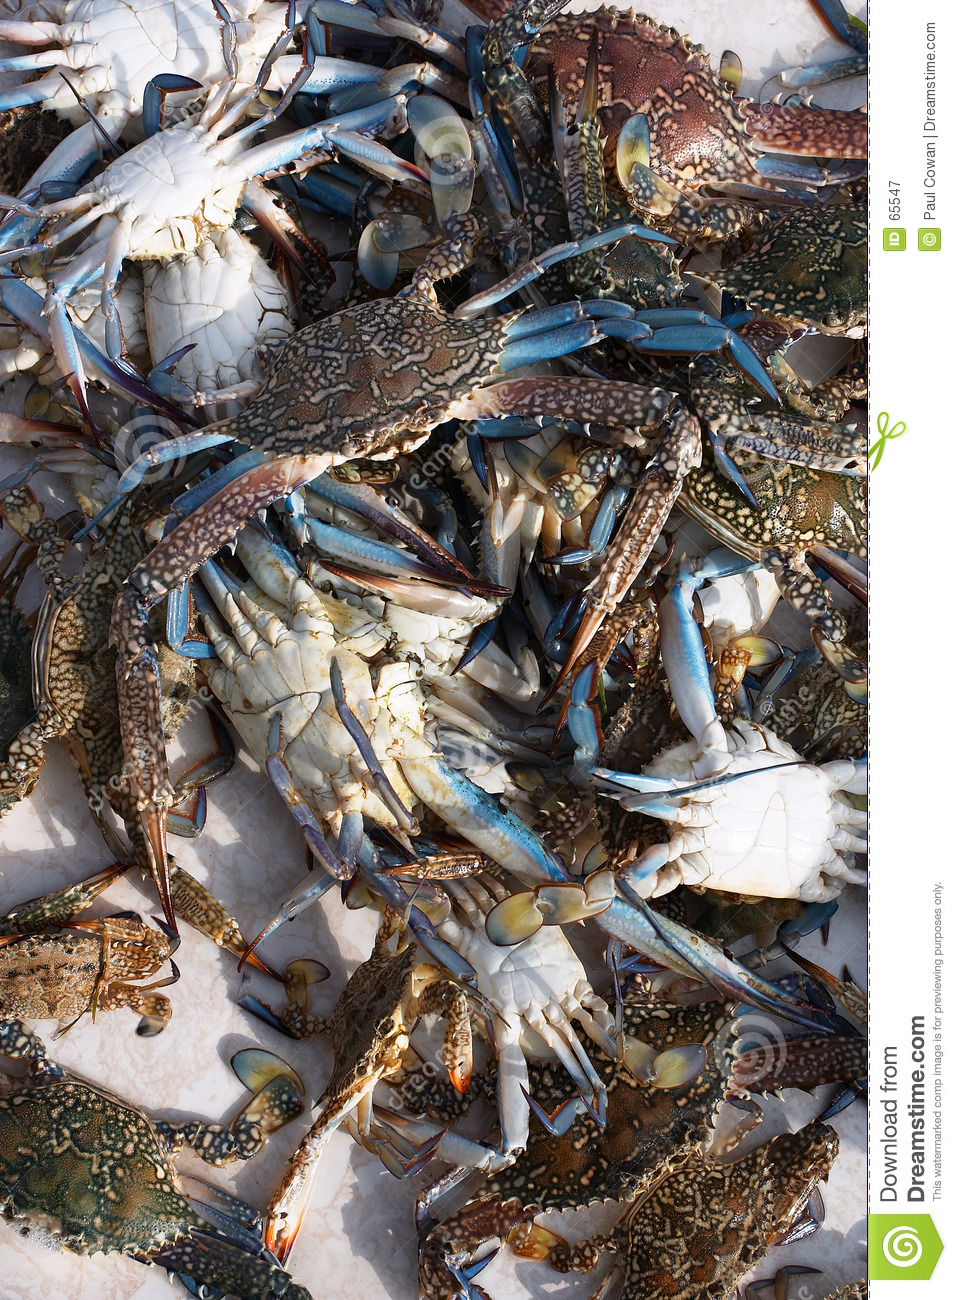 Live crabs from the Arab Gulf